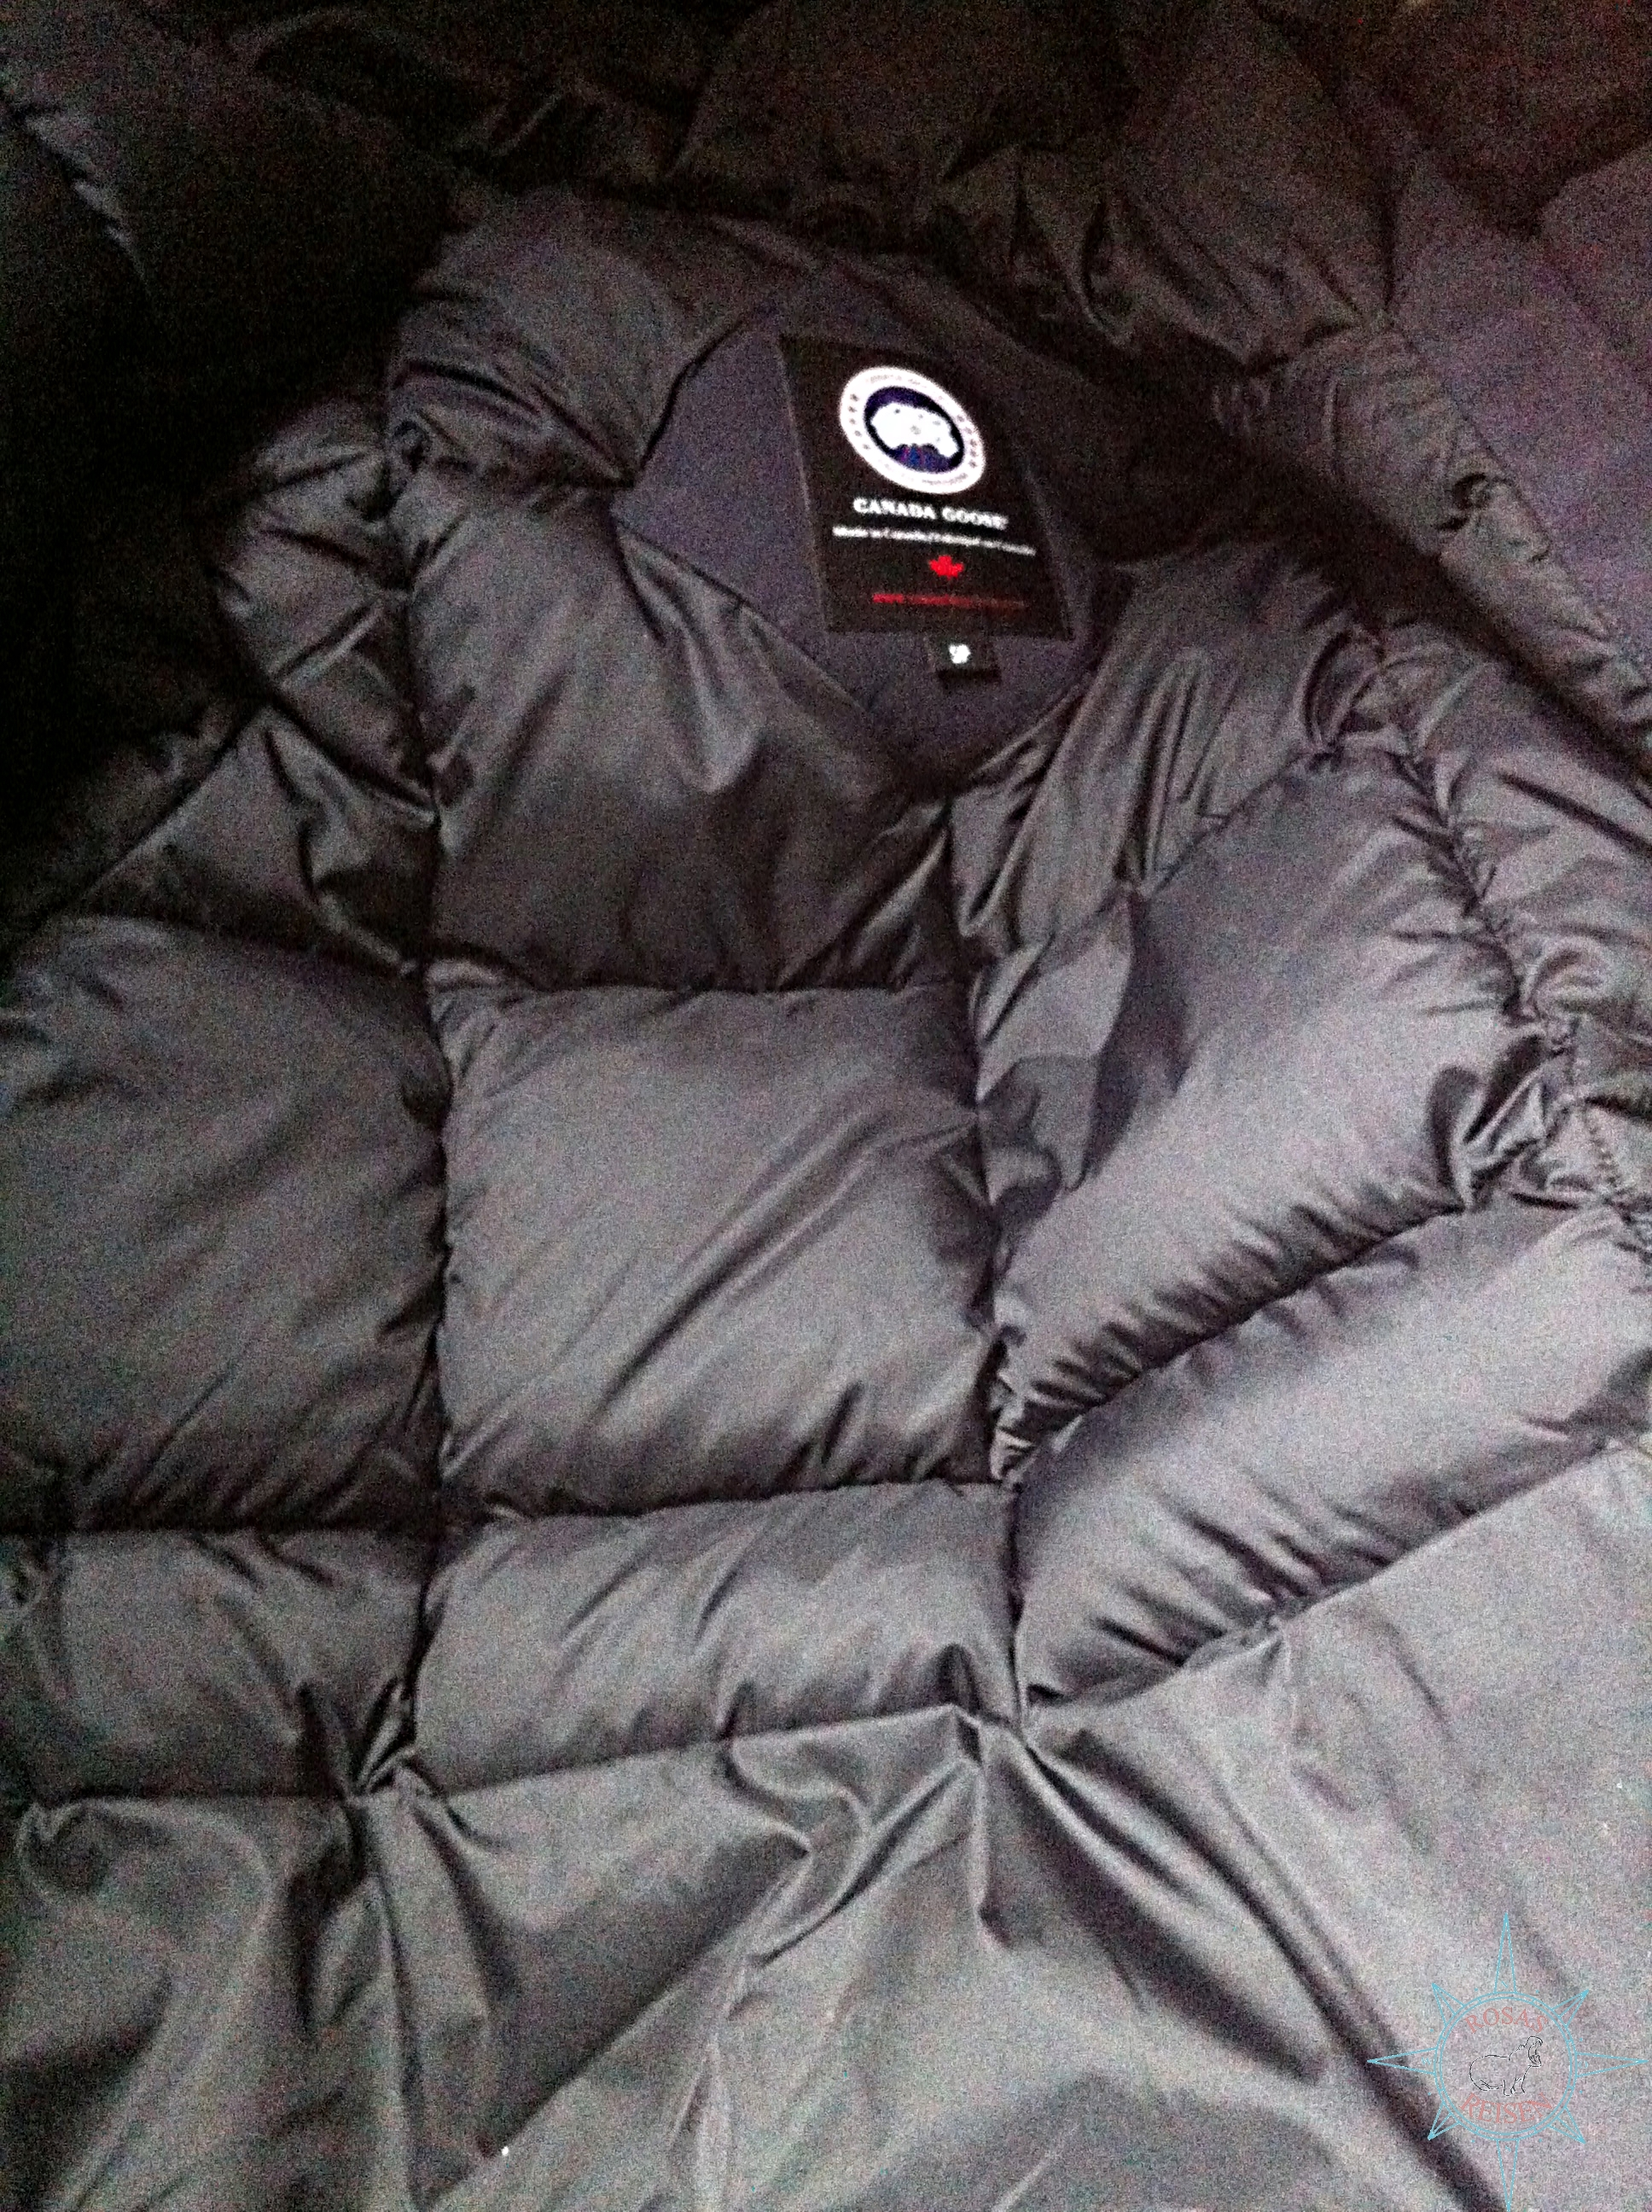 wo kann man canada goose jacken in hamburg kaufen canada goose down outlet shop. Black Bedroom Furniture Sets. Home Design Ideas